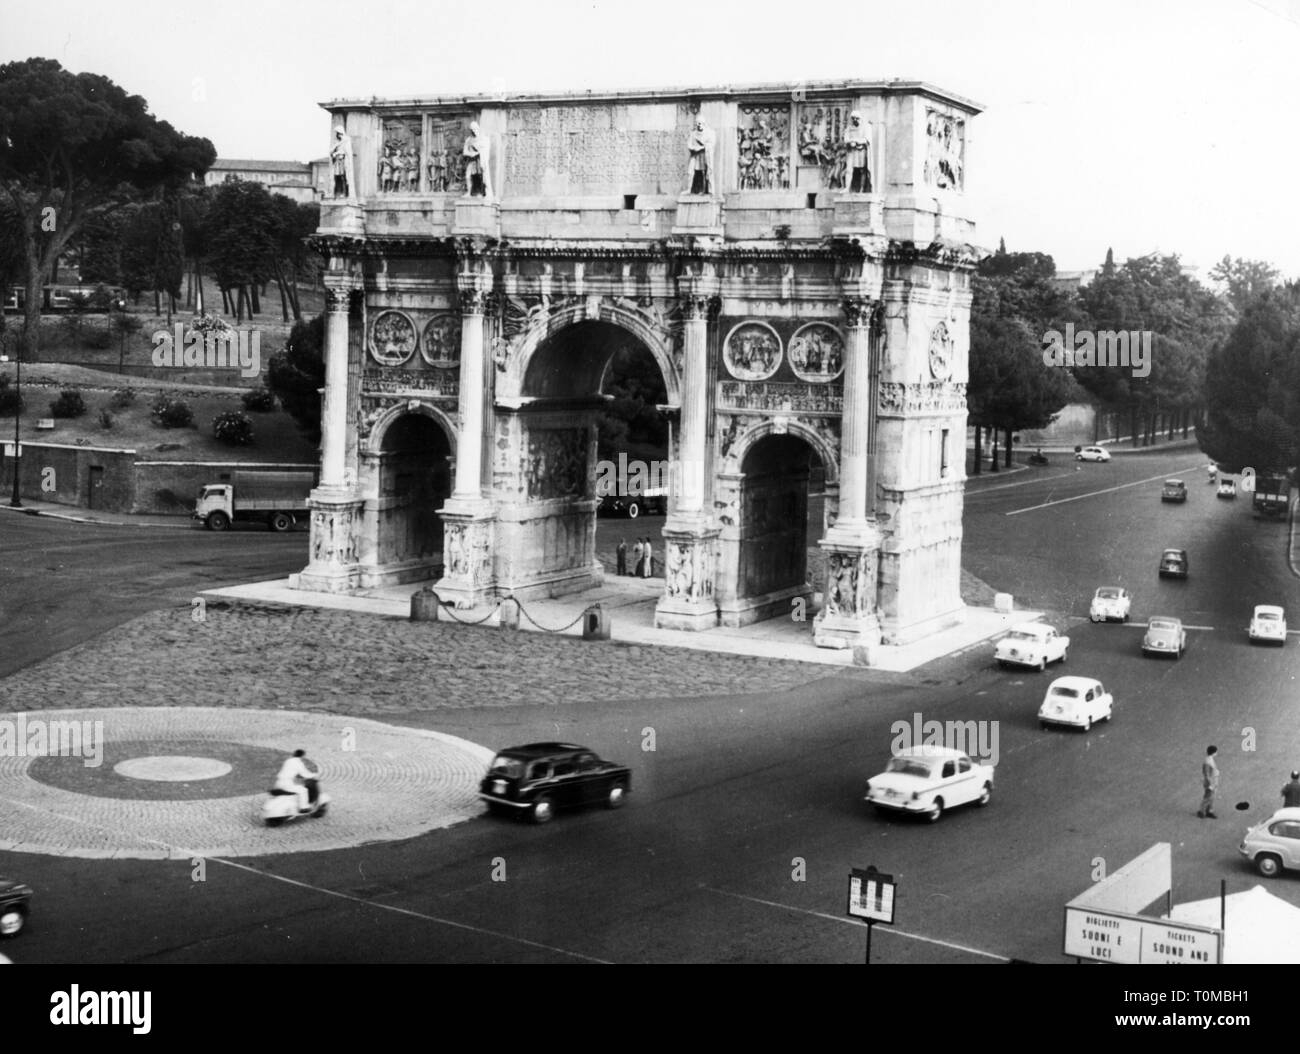 geography / travel, Italy, Rome, building, triumphal arch of Emperor Constantine I, view, 8.7.1960, Additional-Rights-Clearance-Info-Not-Available - Stock Image